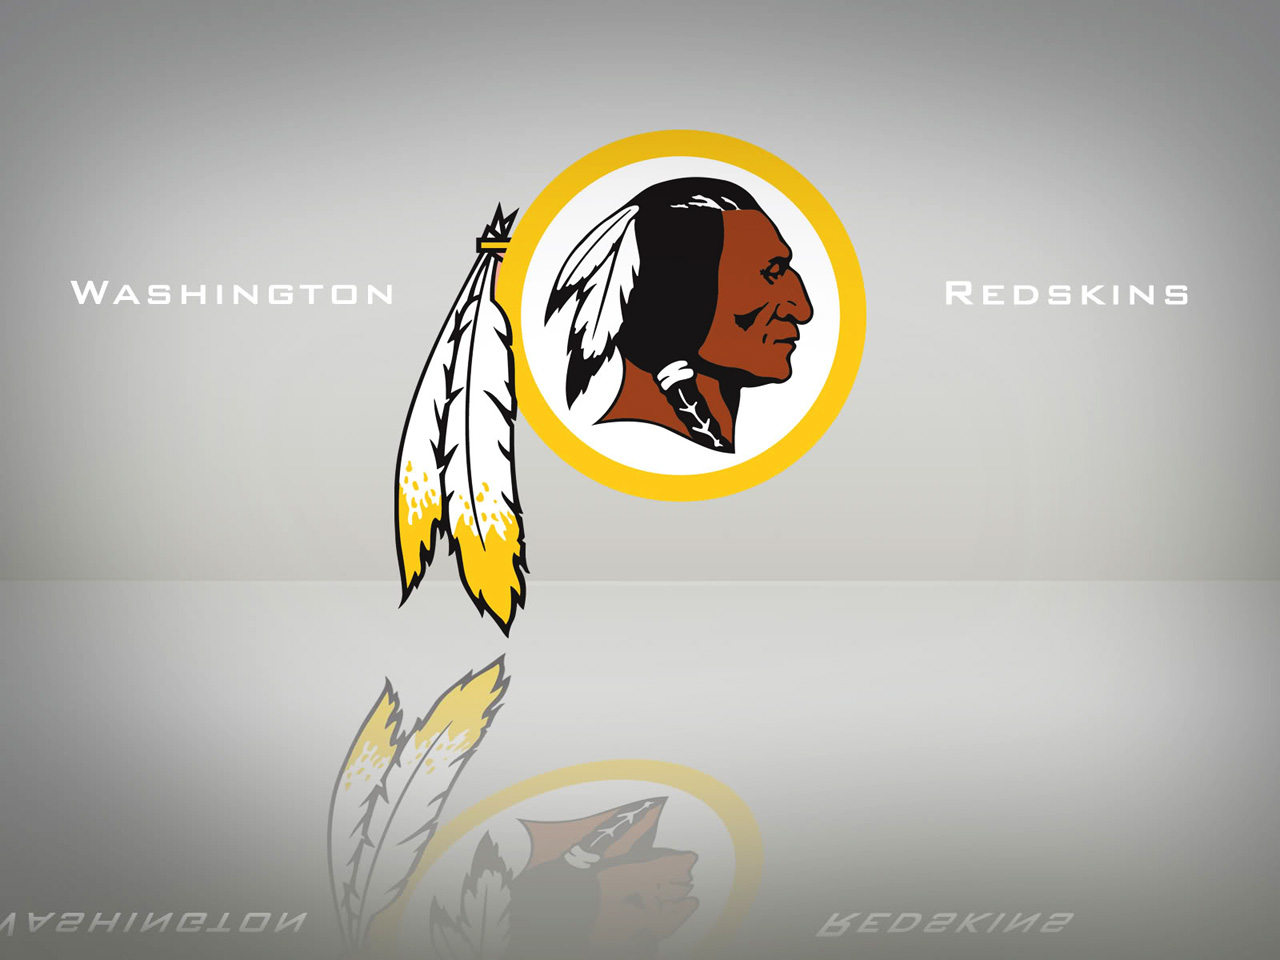 Download-free-redskins-for-your-mobile-phone-most-wallpaper-wpc9004412